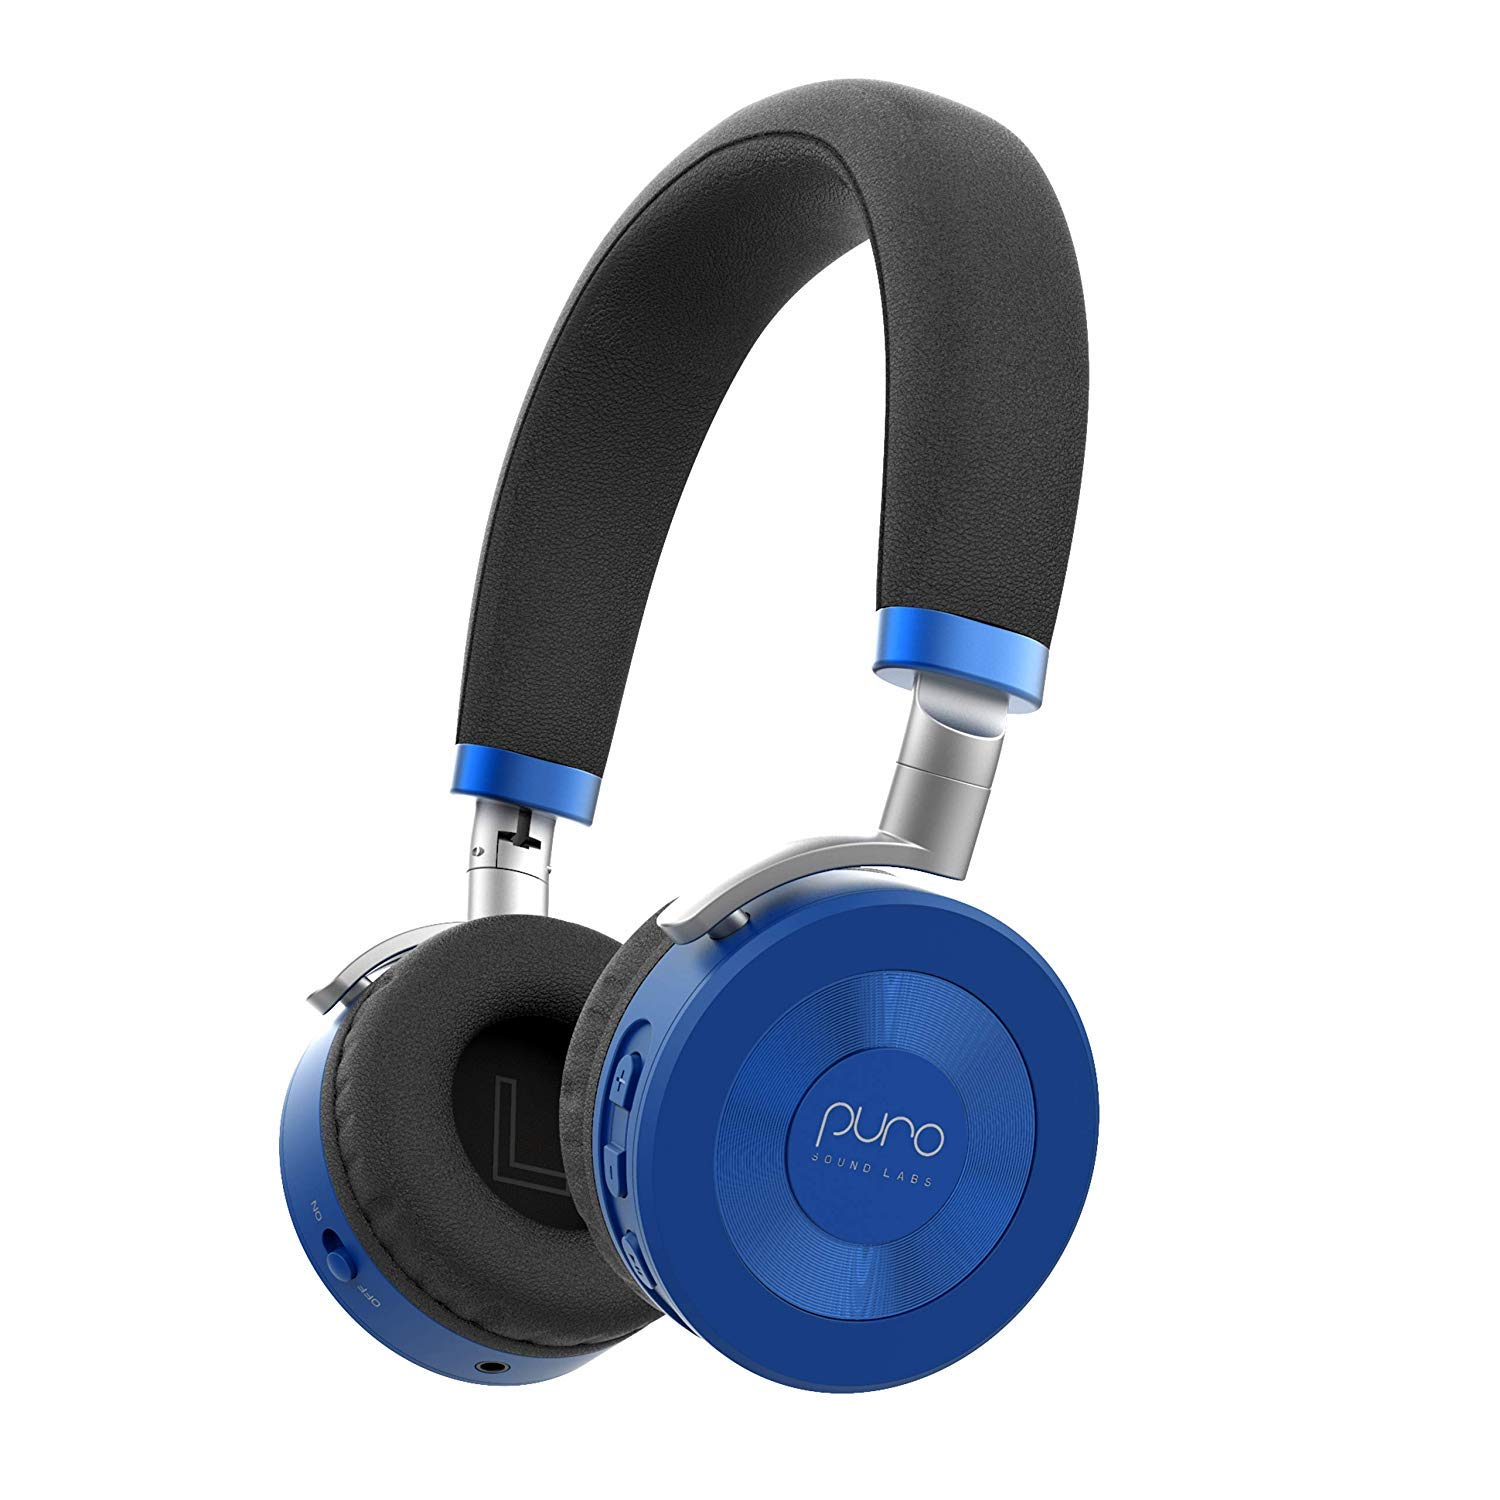 JuniorJams Volume Limiting Headphones for Kids 3+ Protect Hearing - Foldable & Adjustable Bluetooth Wireless Headphones for Tablets, Smartphones, PCs - 22-Hour Battery Life by Puro Sound Labs, Blue by Puro Sound Labs